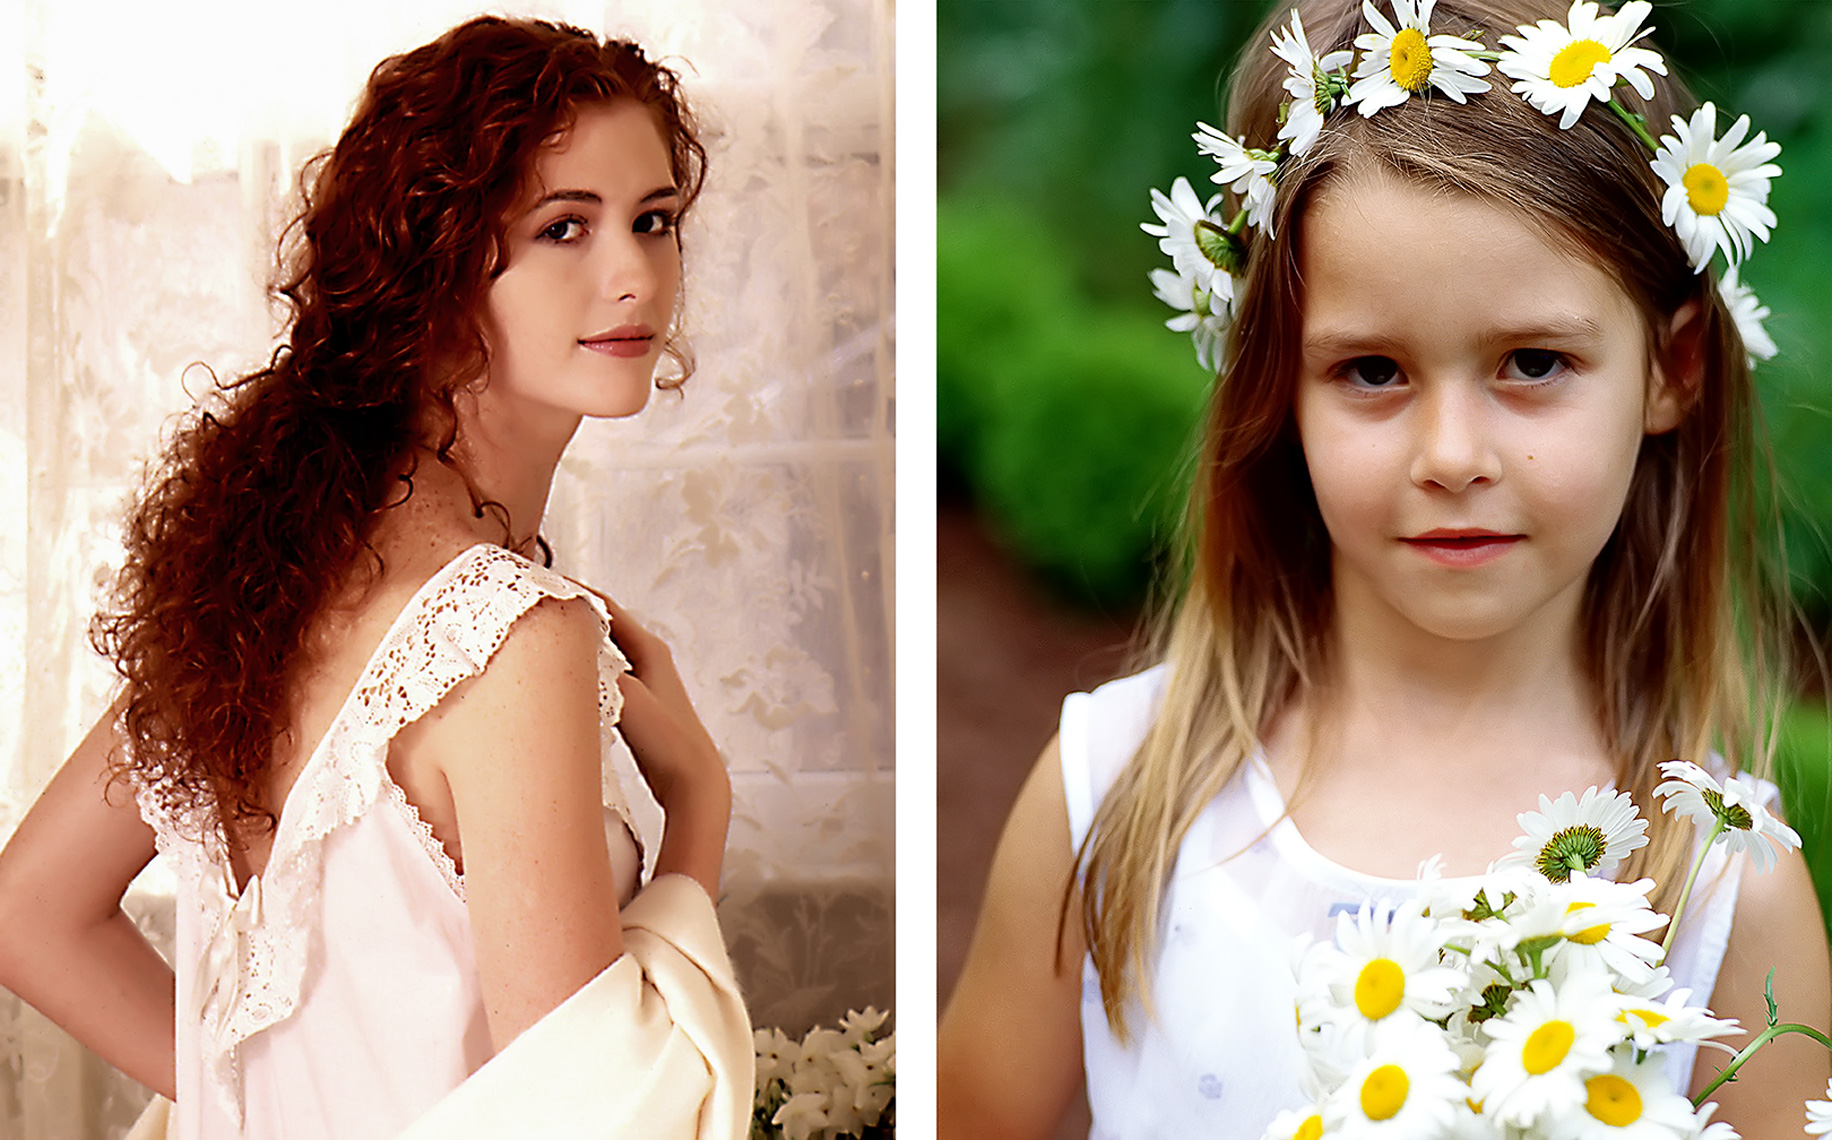 pretty redhead girl and young girl with daisy